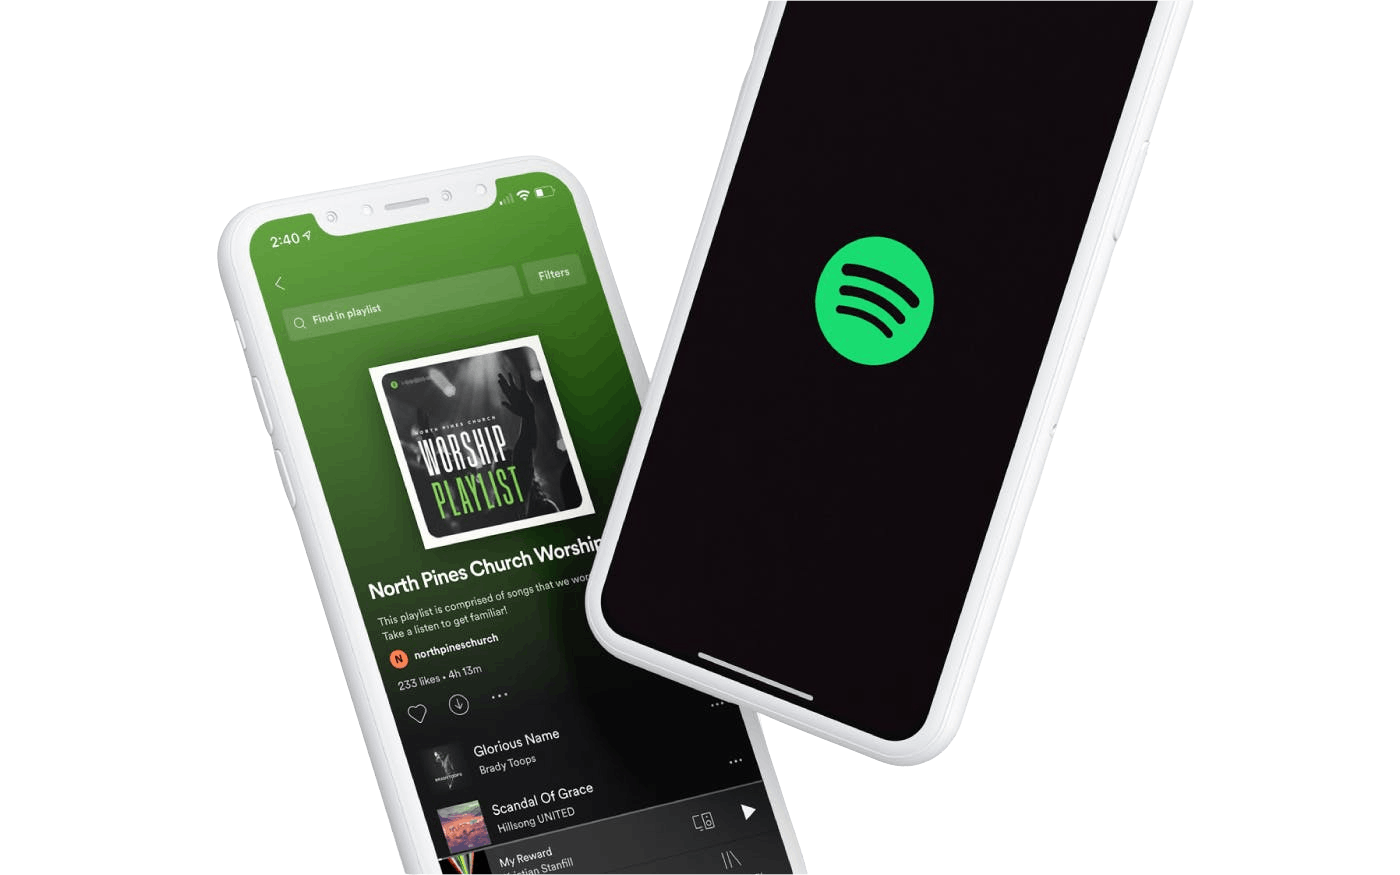 Mobile phone with North Pines Church Spotify playlist opened.